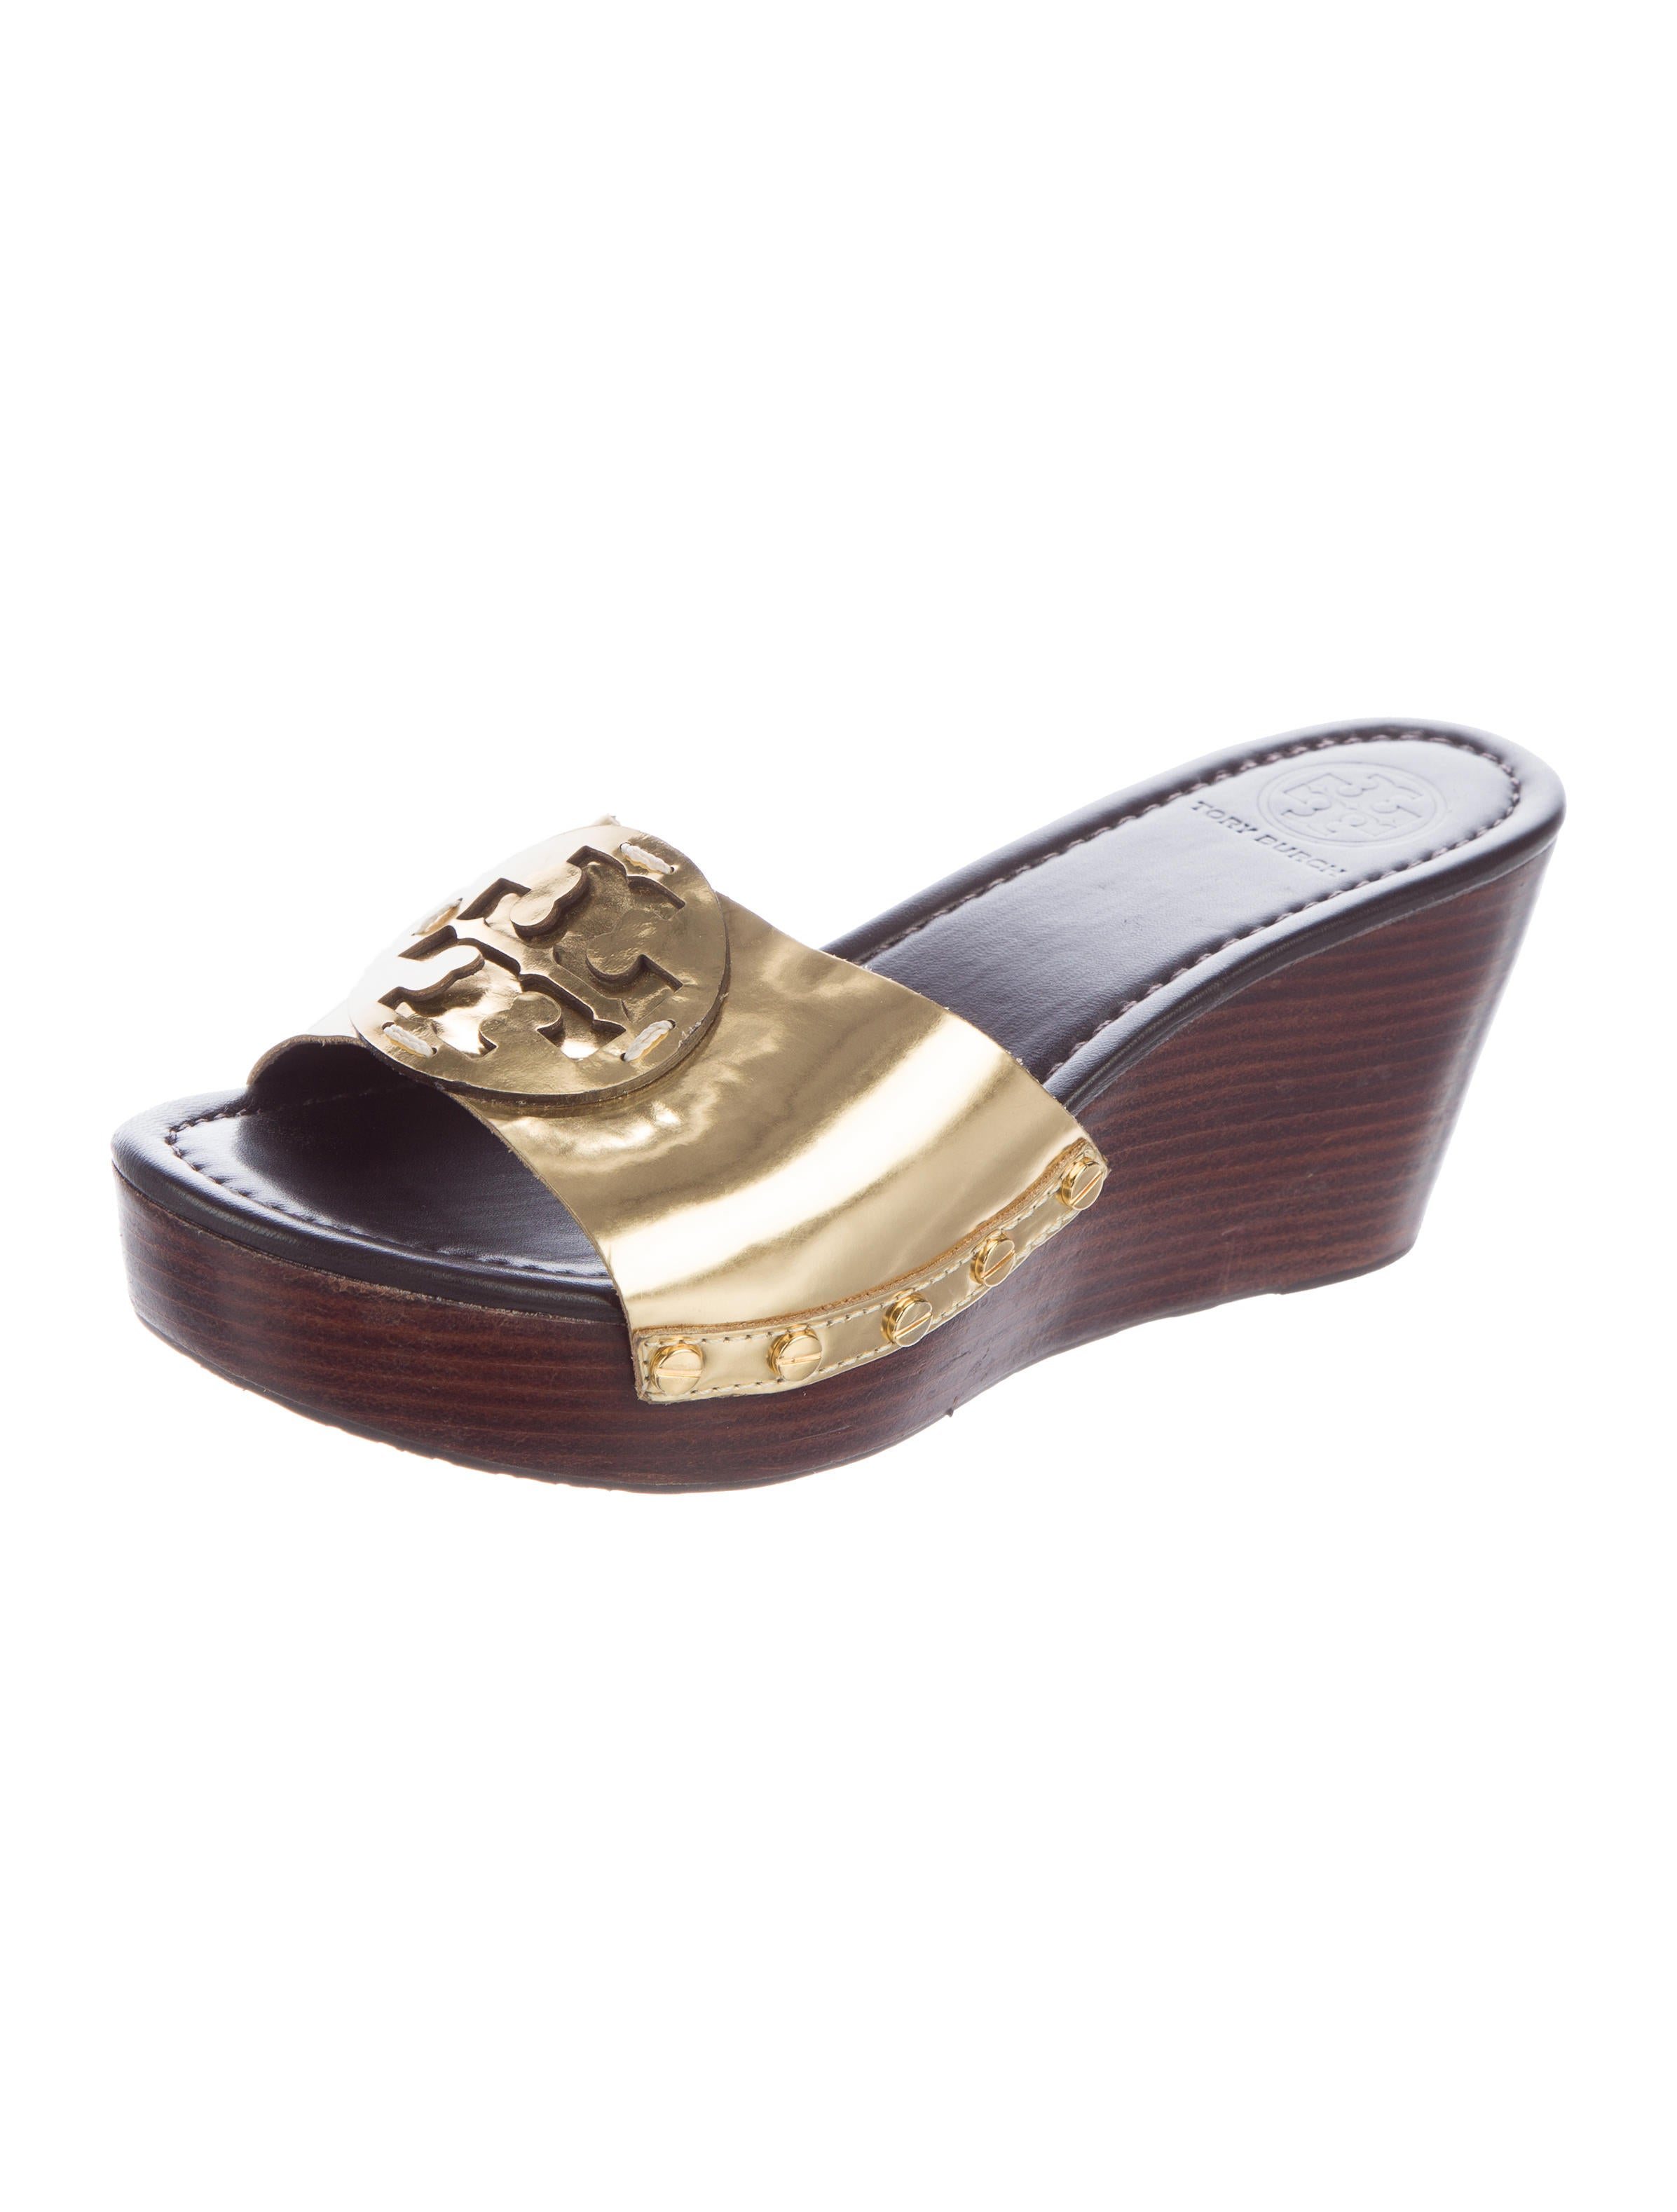 tory burch patti metallic wedge sandals shoes